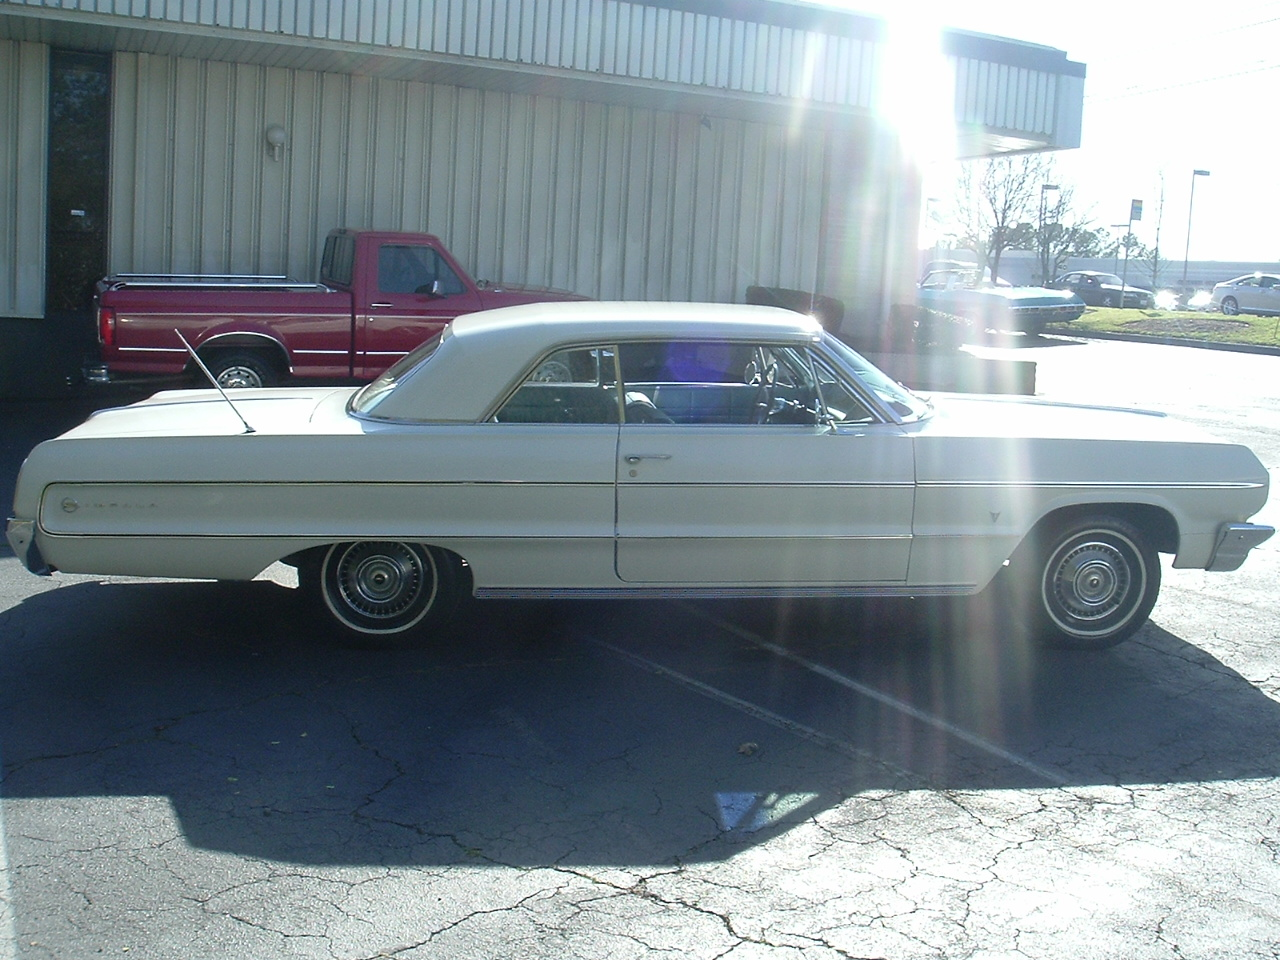 1964 Impala Two Door Hardtop White (6)